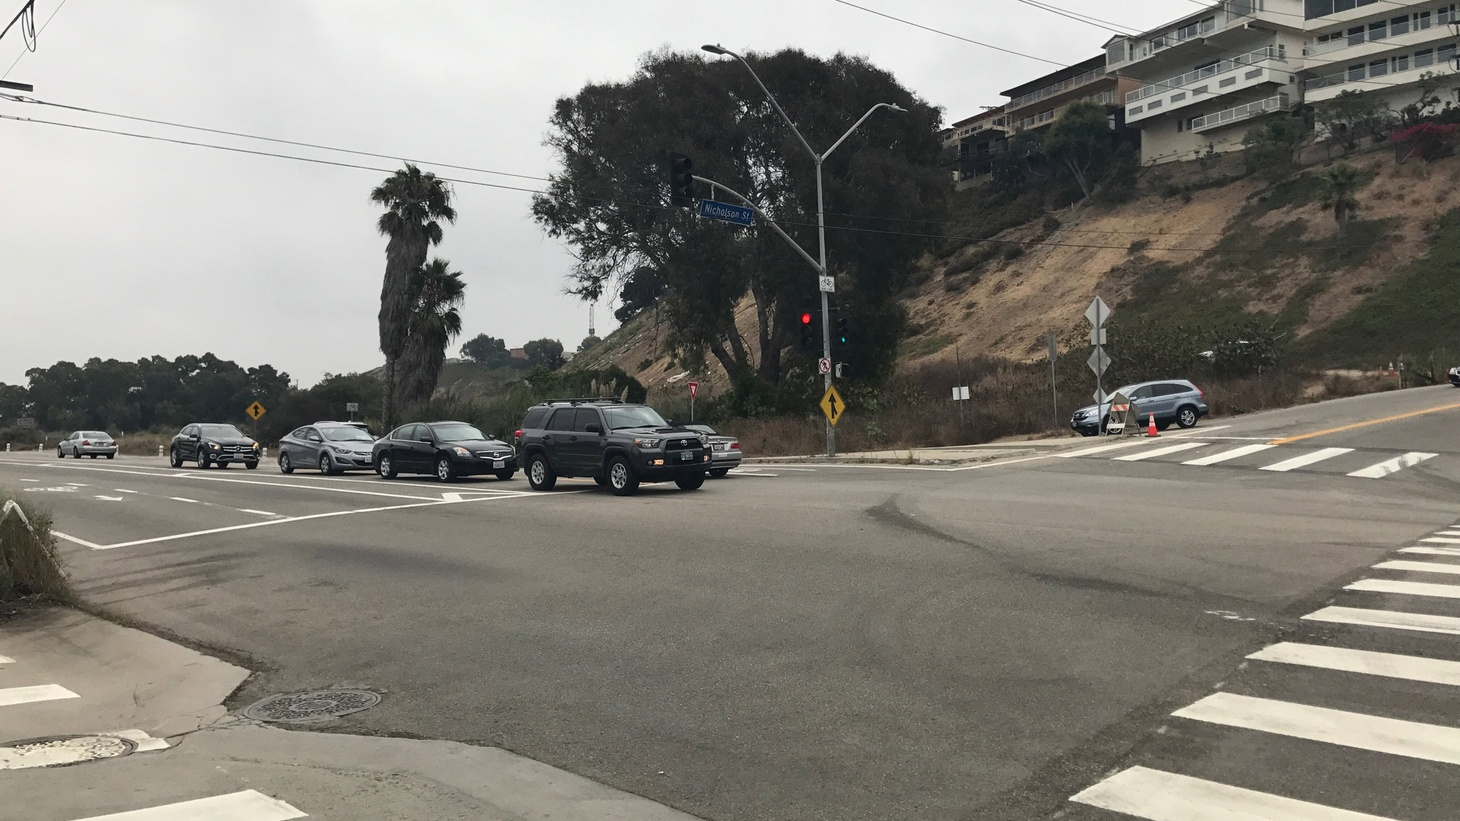 Traffic in Southern California keeps getting worse. Elected officials have commissioned new light rail lines, additional bike paths, and have even added more freeway lanes. There's also another concept they're playing with: road diets. One community is fighting back.